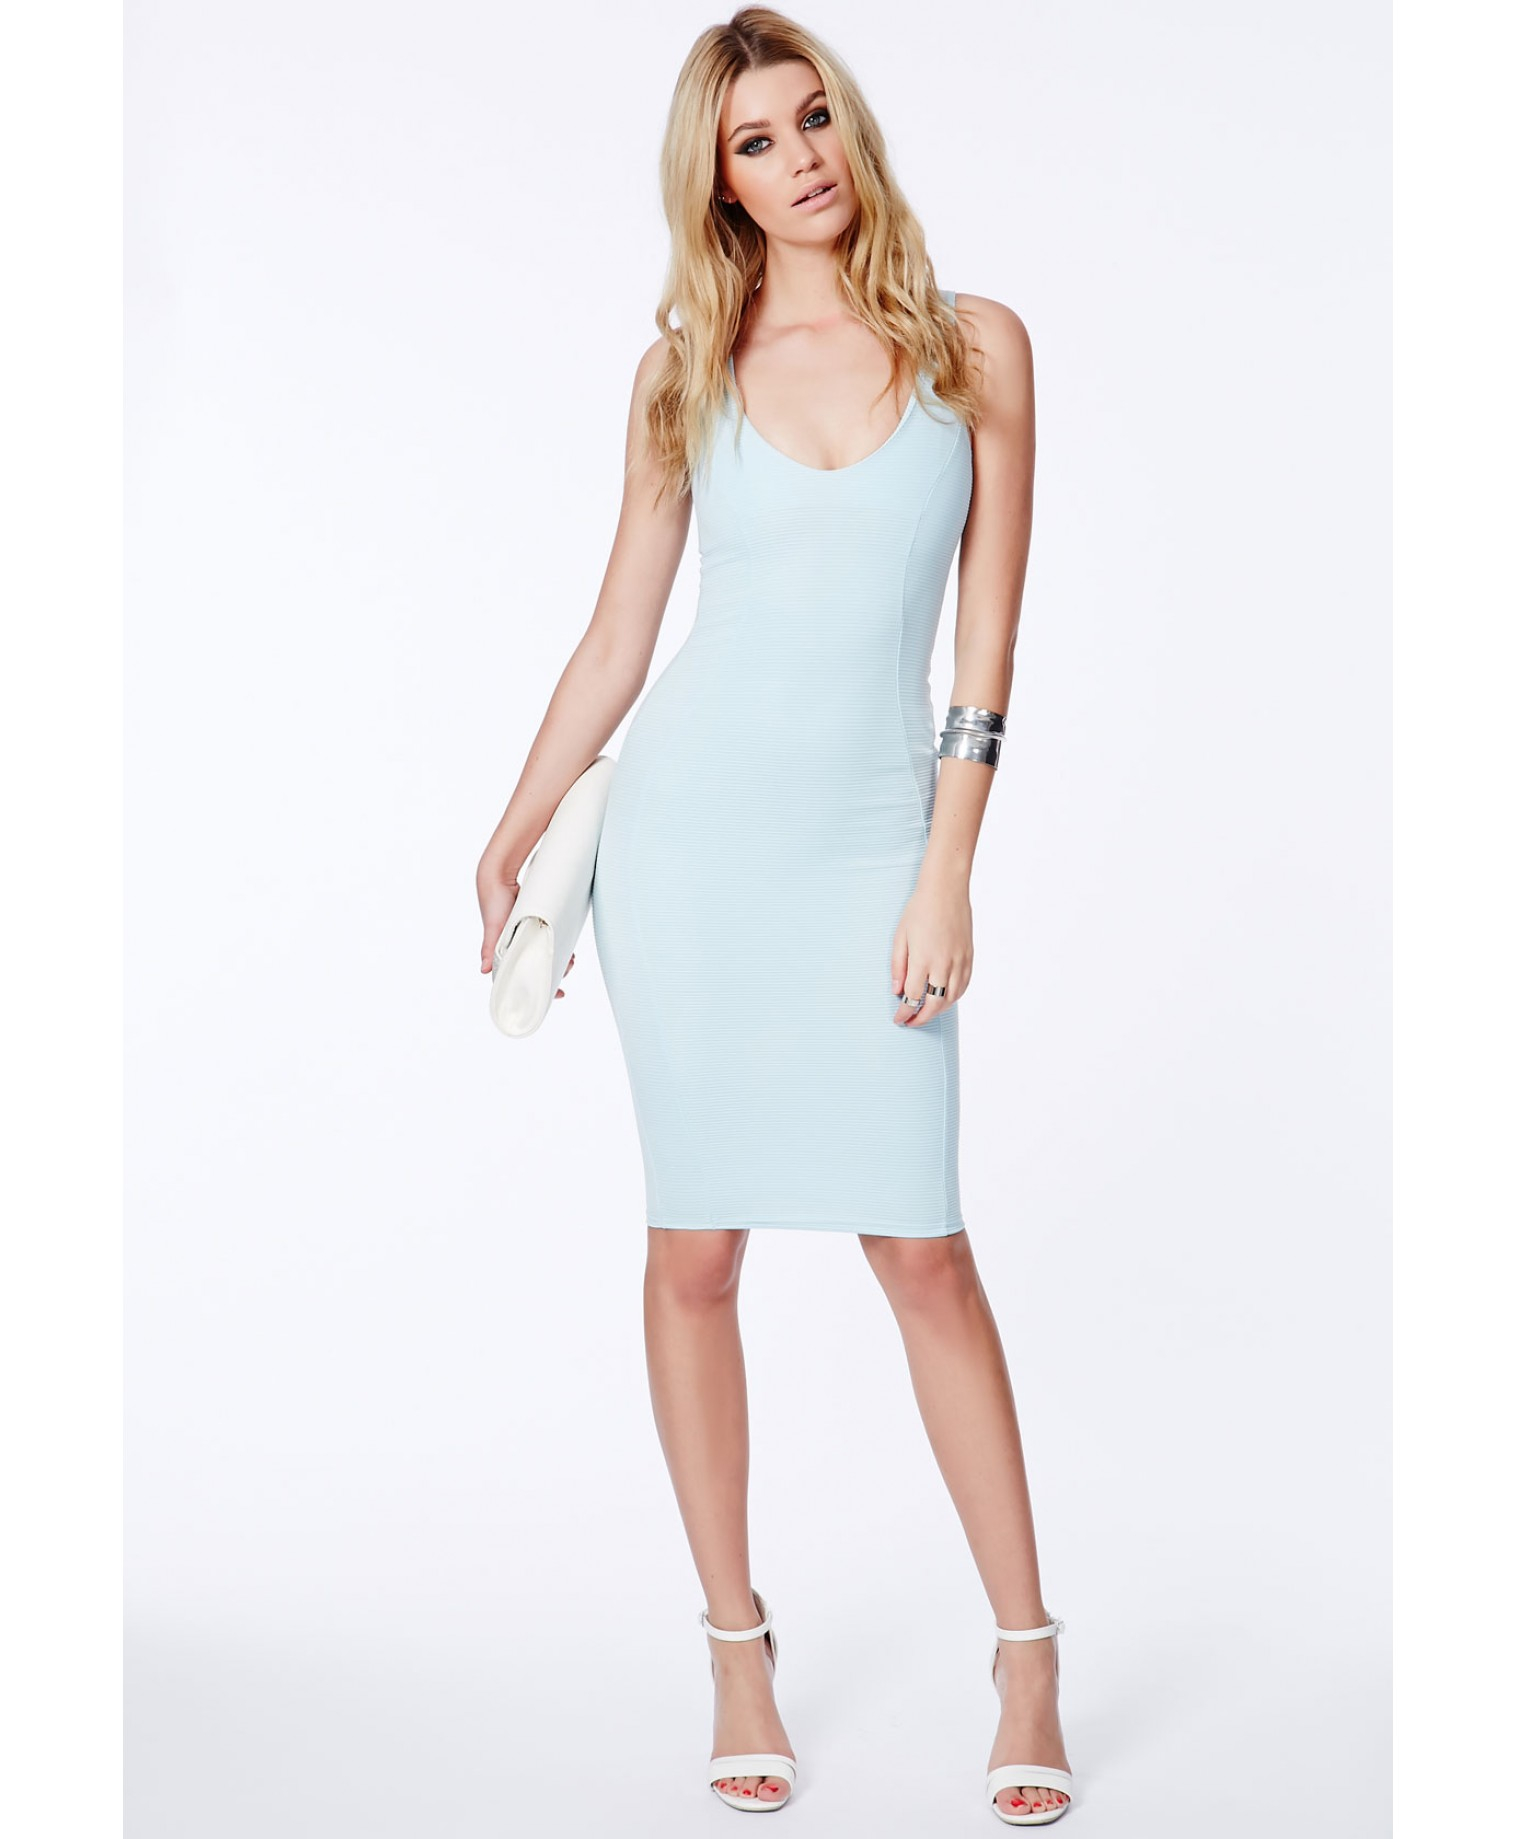 Missguided Ryana Ribbed Bodycon Midi Dress In Baby Blue in Blue | Lyst